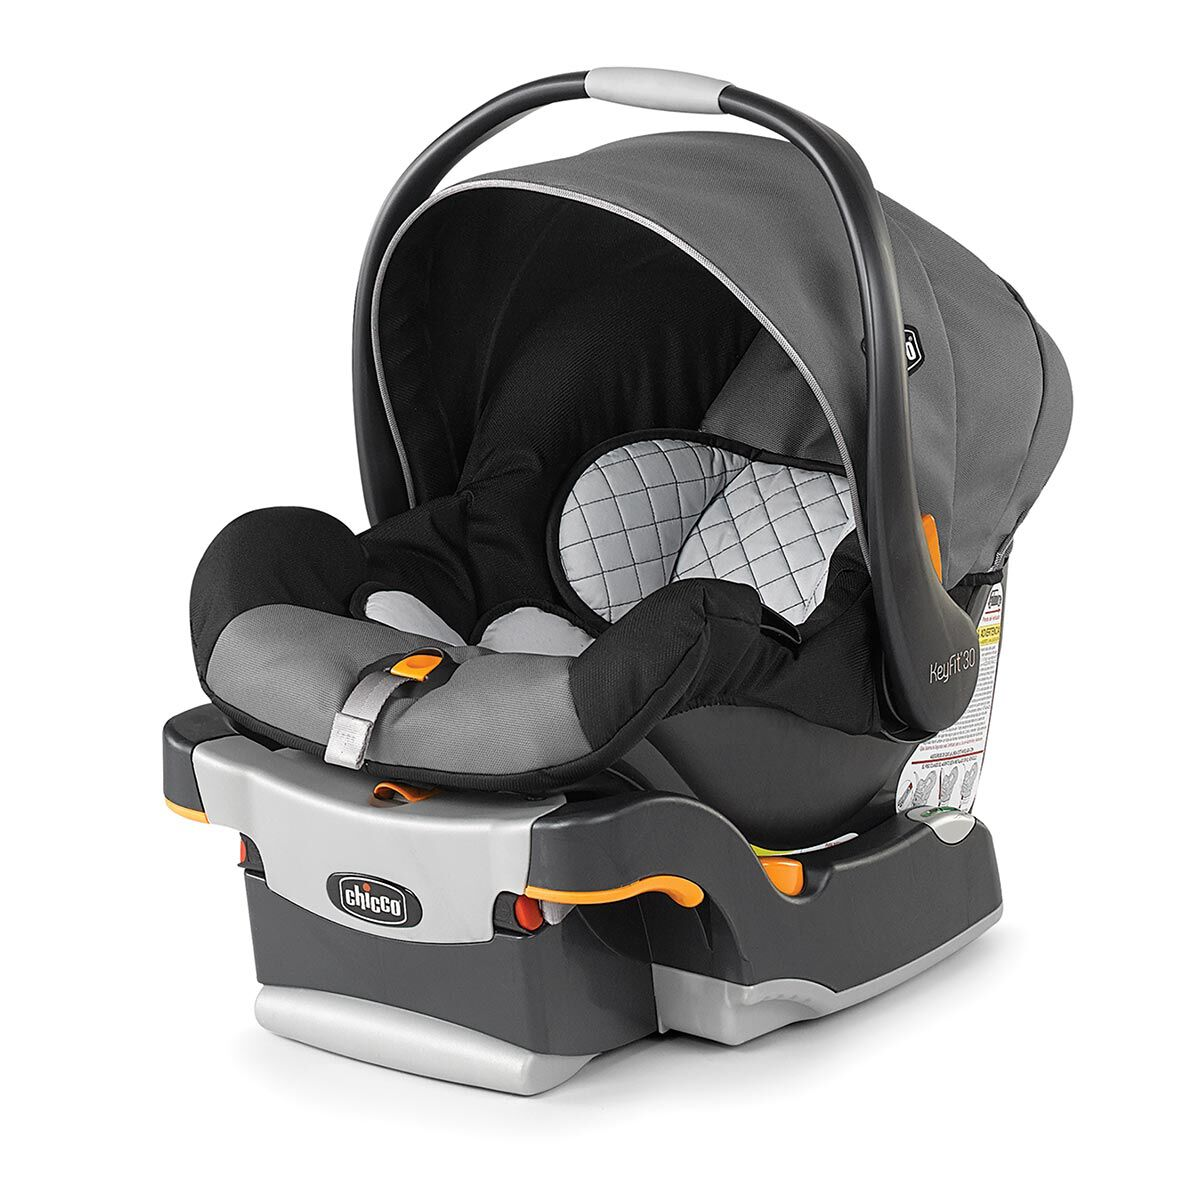 Keyfit 30 infant car seat base orionchicco keyfit 30 infant carseat orion up to 30 pounds or 30 inches which ever occurs first